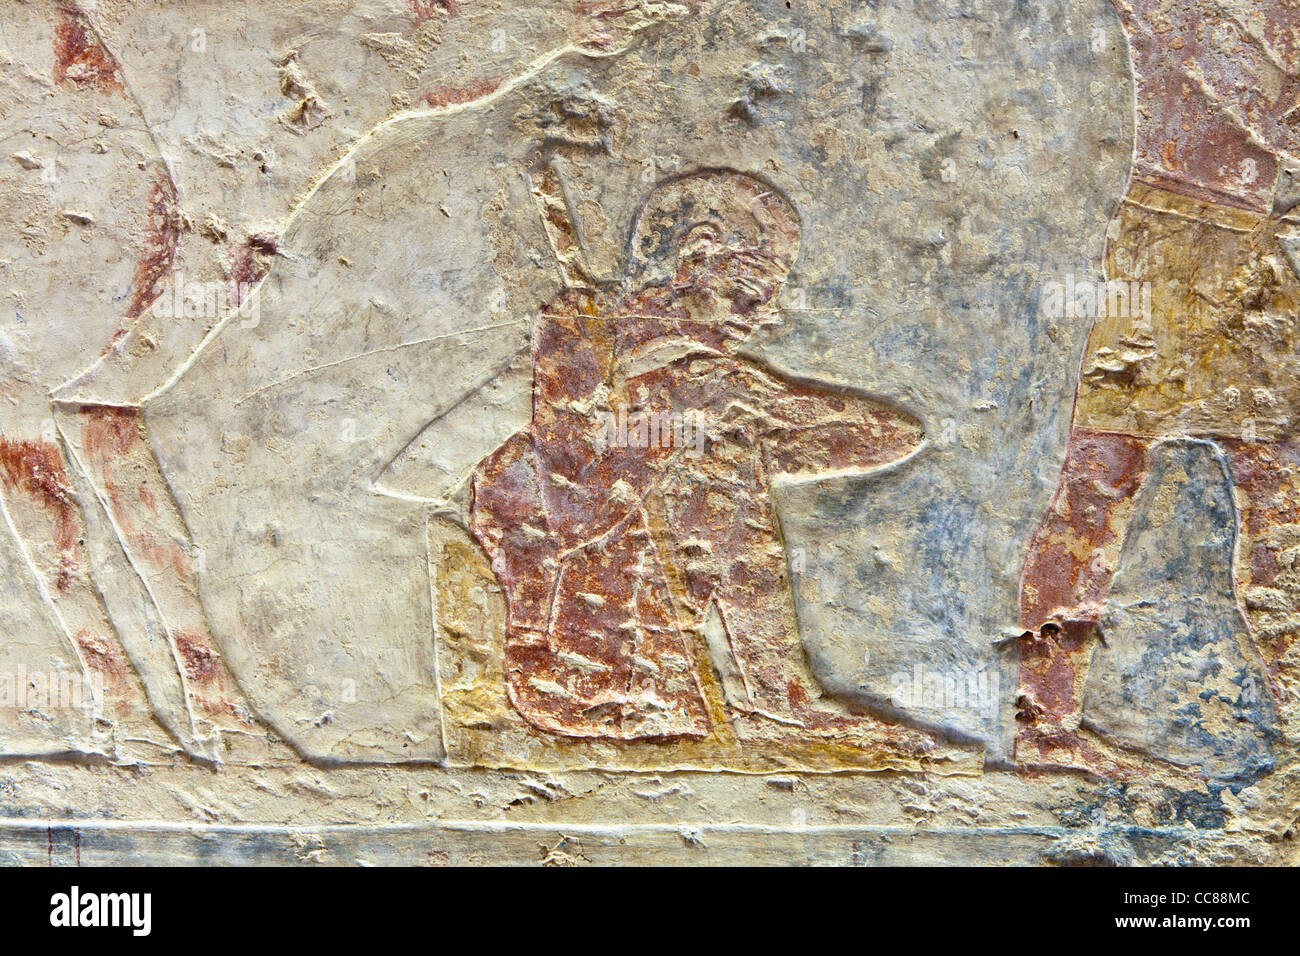 Reliefs in the Middle Kingdom tomb of Senbi Son of Ykh Hotep at Meir , North West of Asyut in Middle Egypt - Stock Image